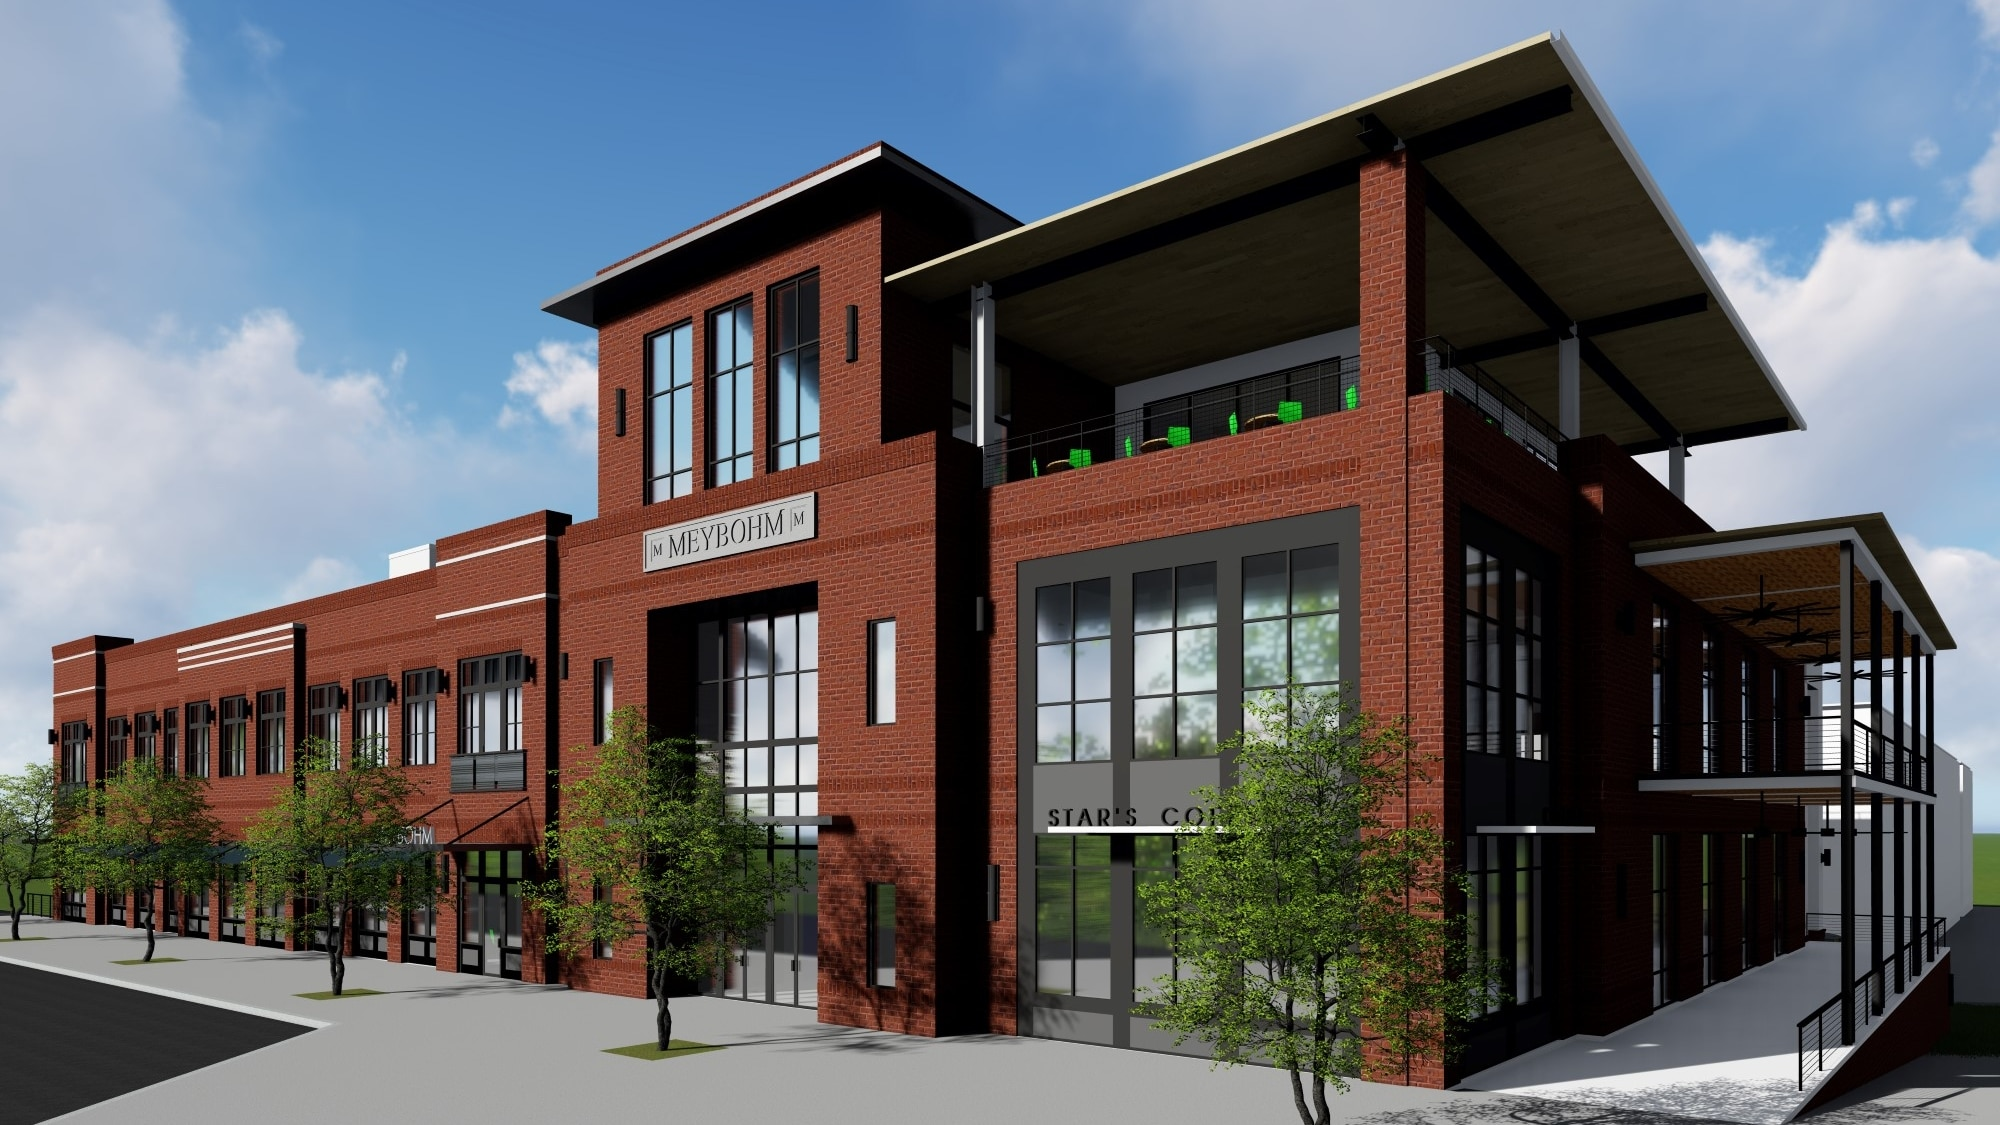 TSW - Evans Towne Center is a mixed-use development